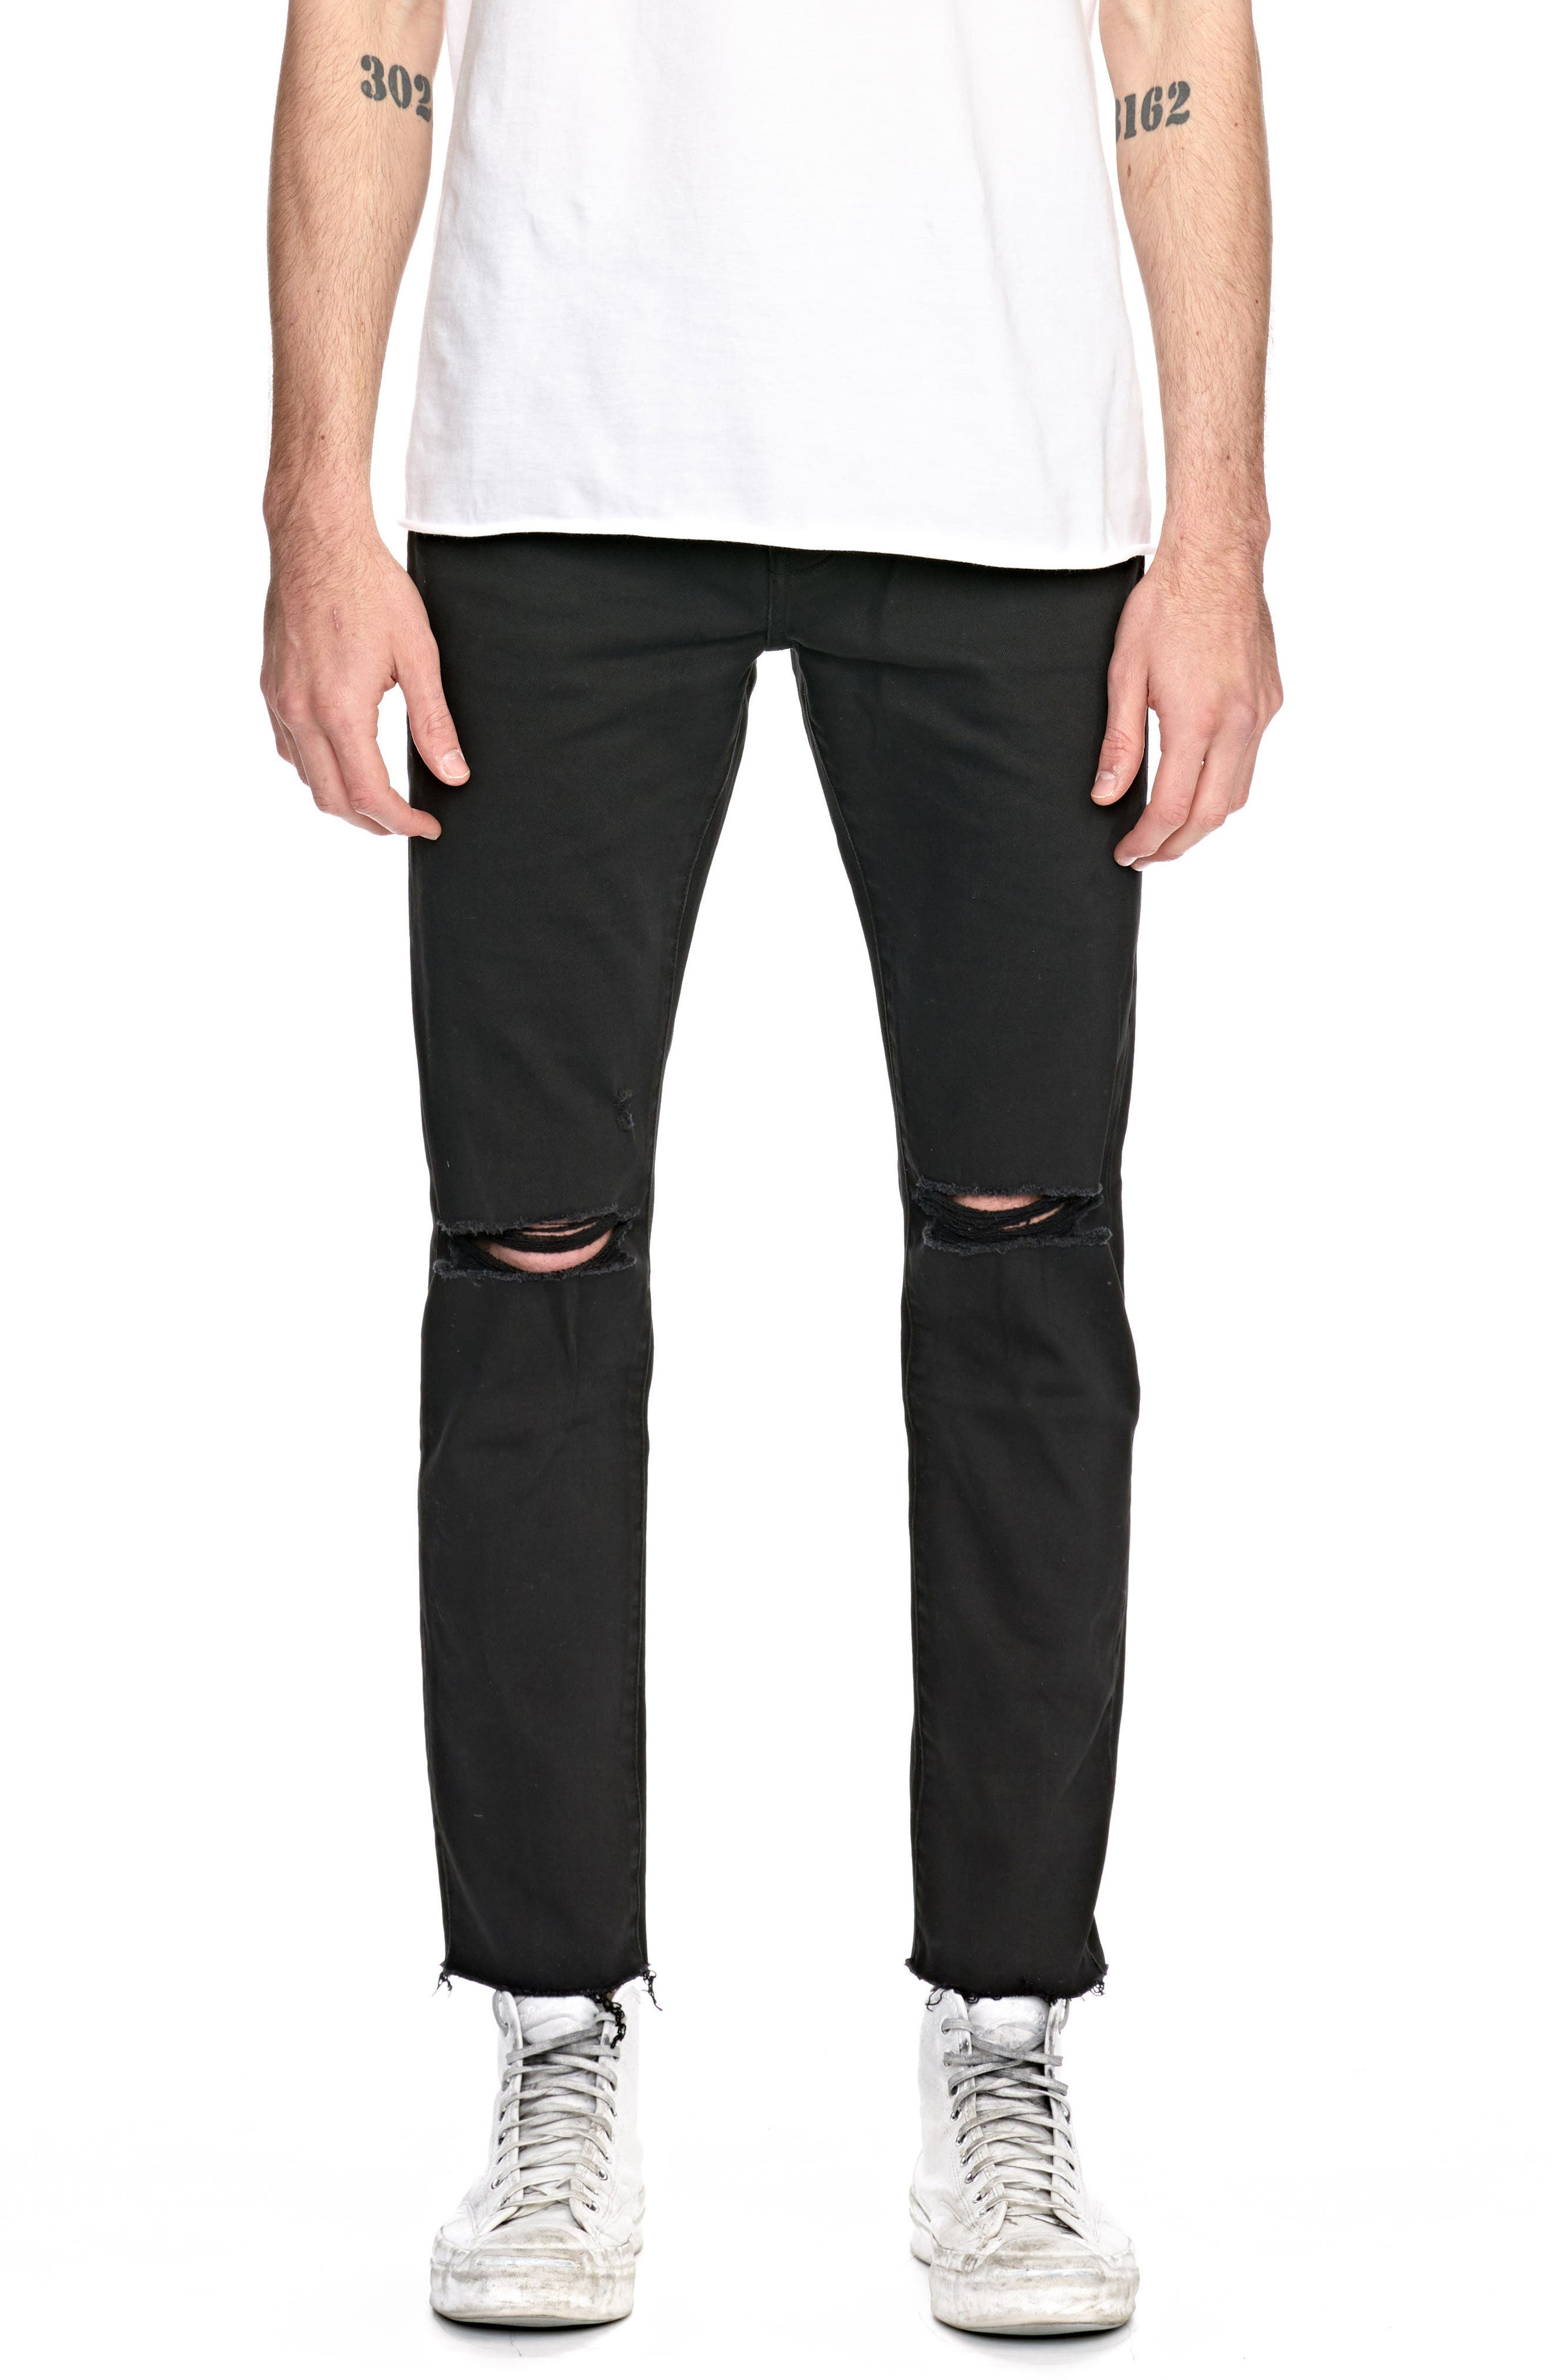 Alternate Image 1 Selected - NEUW Iggy Skinny Fit Jeans (Porter)